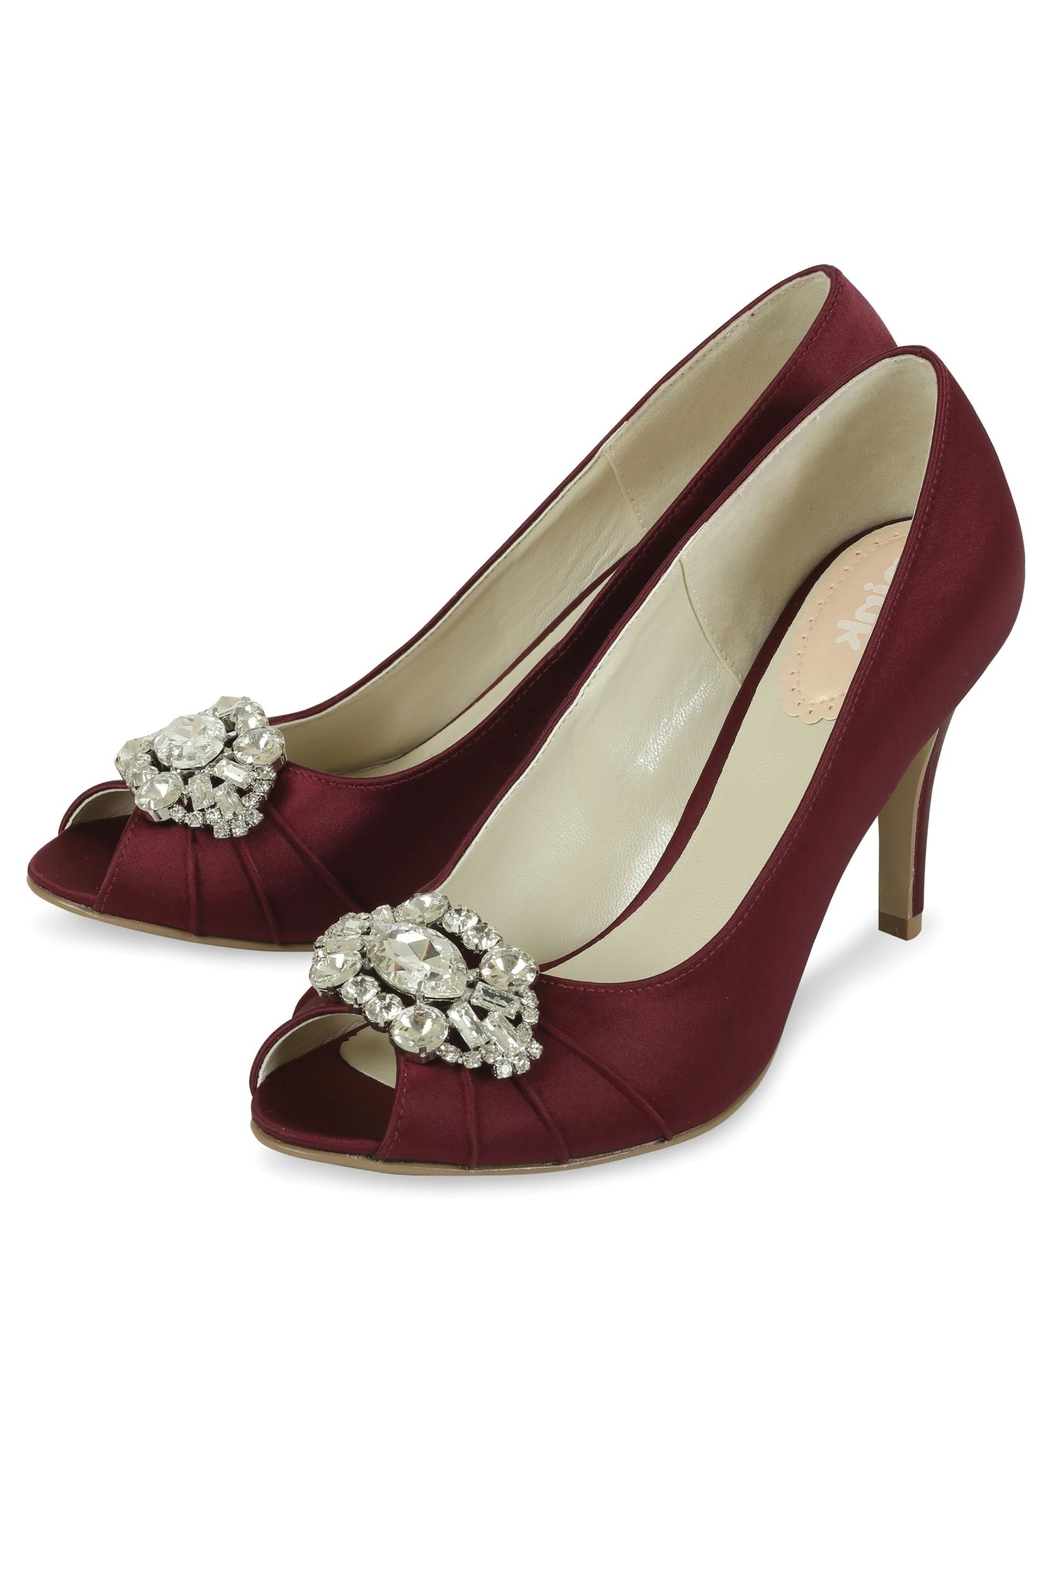 pink paradox London Tender Claret Satin Shoes - Front Full Image